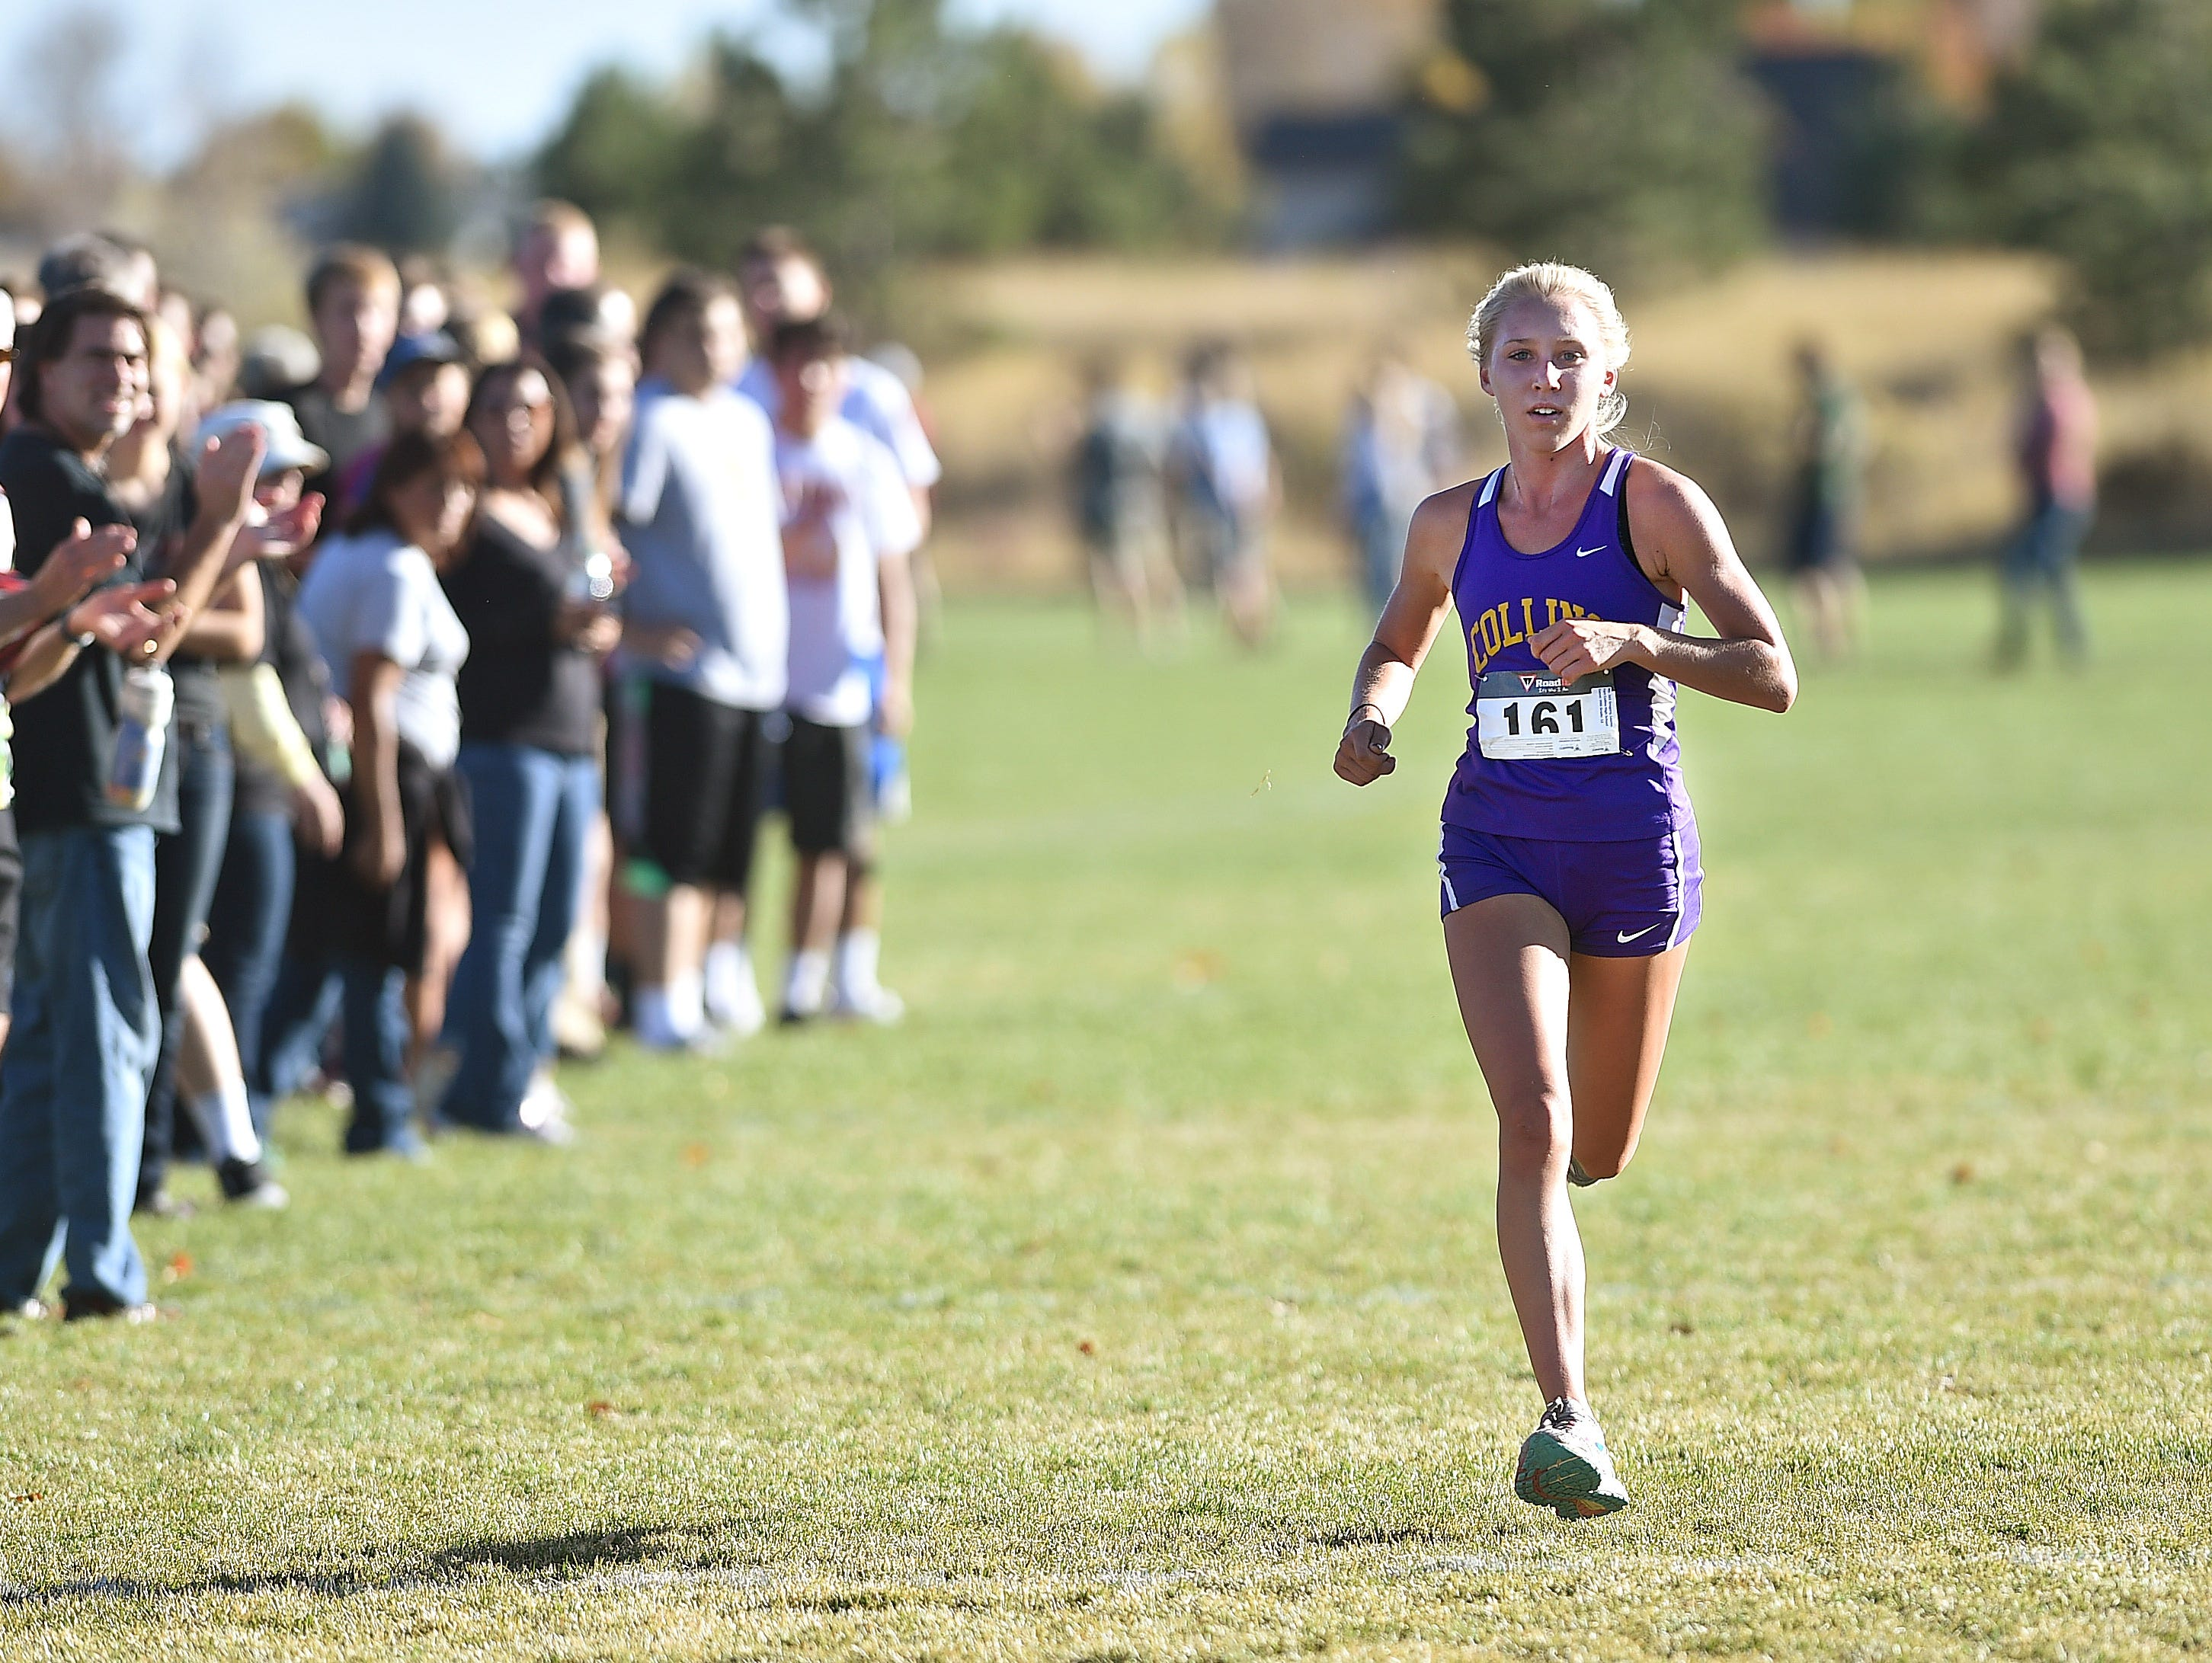 Fort Collins High School's Lauren Gregory approaches the finish line in the regional cross country meet at Spring Canyon Park on Friday, October 21, 2016.